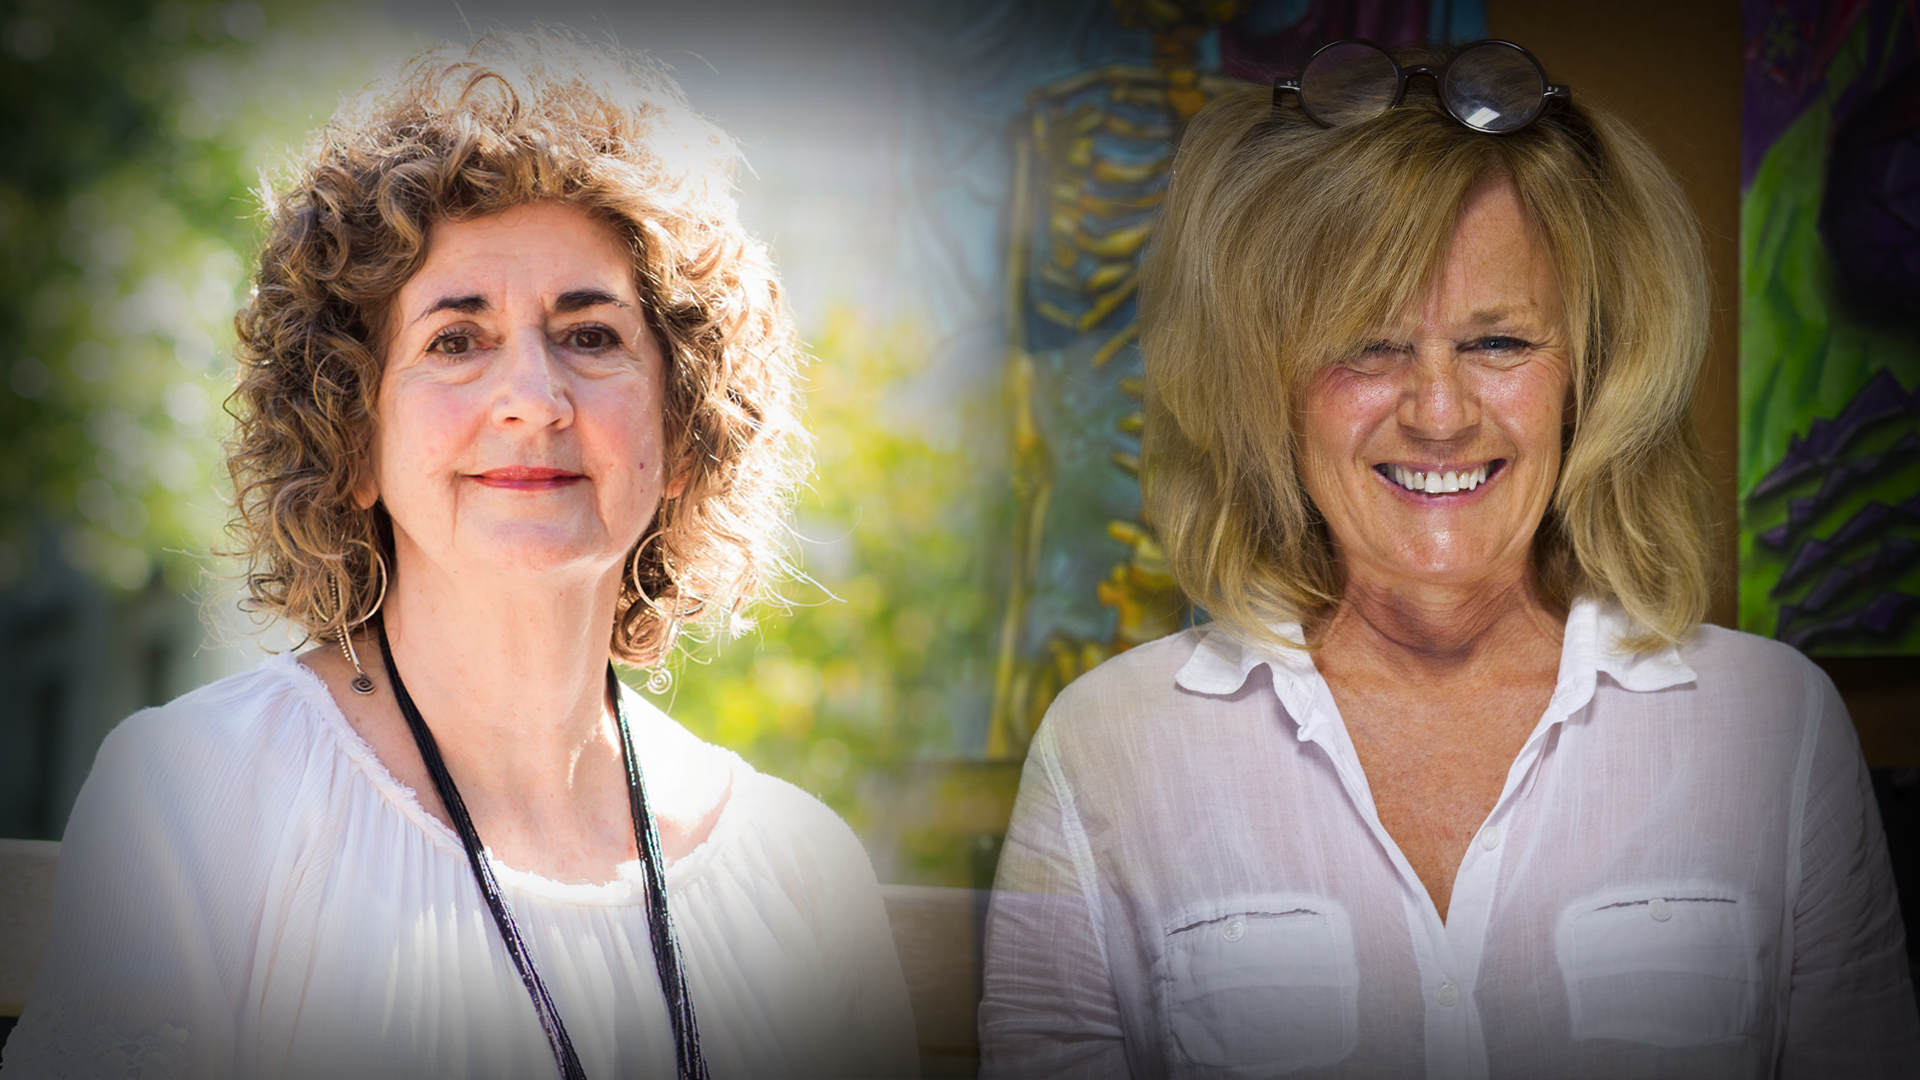 Patti Owen-Smith and Camille Cottrell retired after the spring 2019-2020 academic year